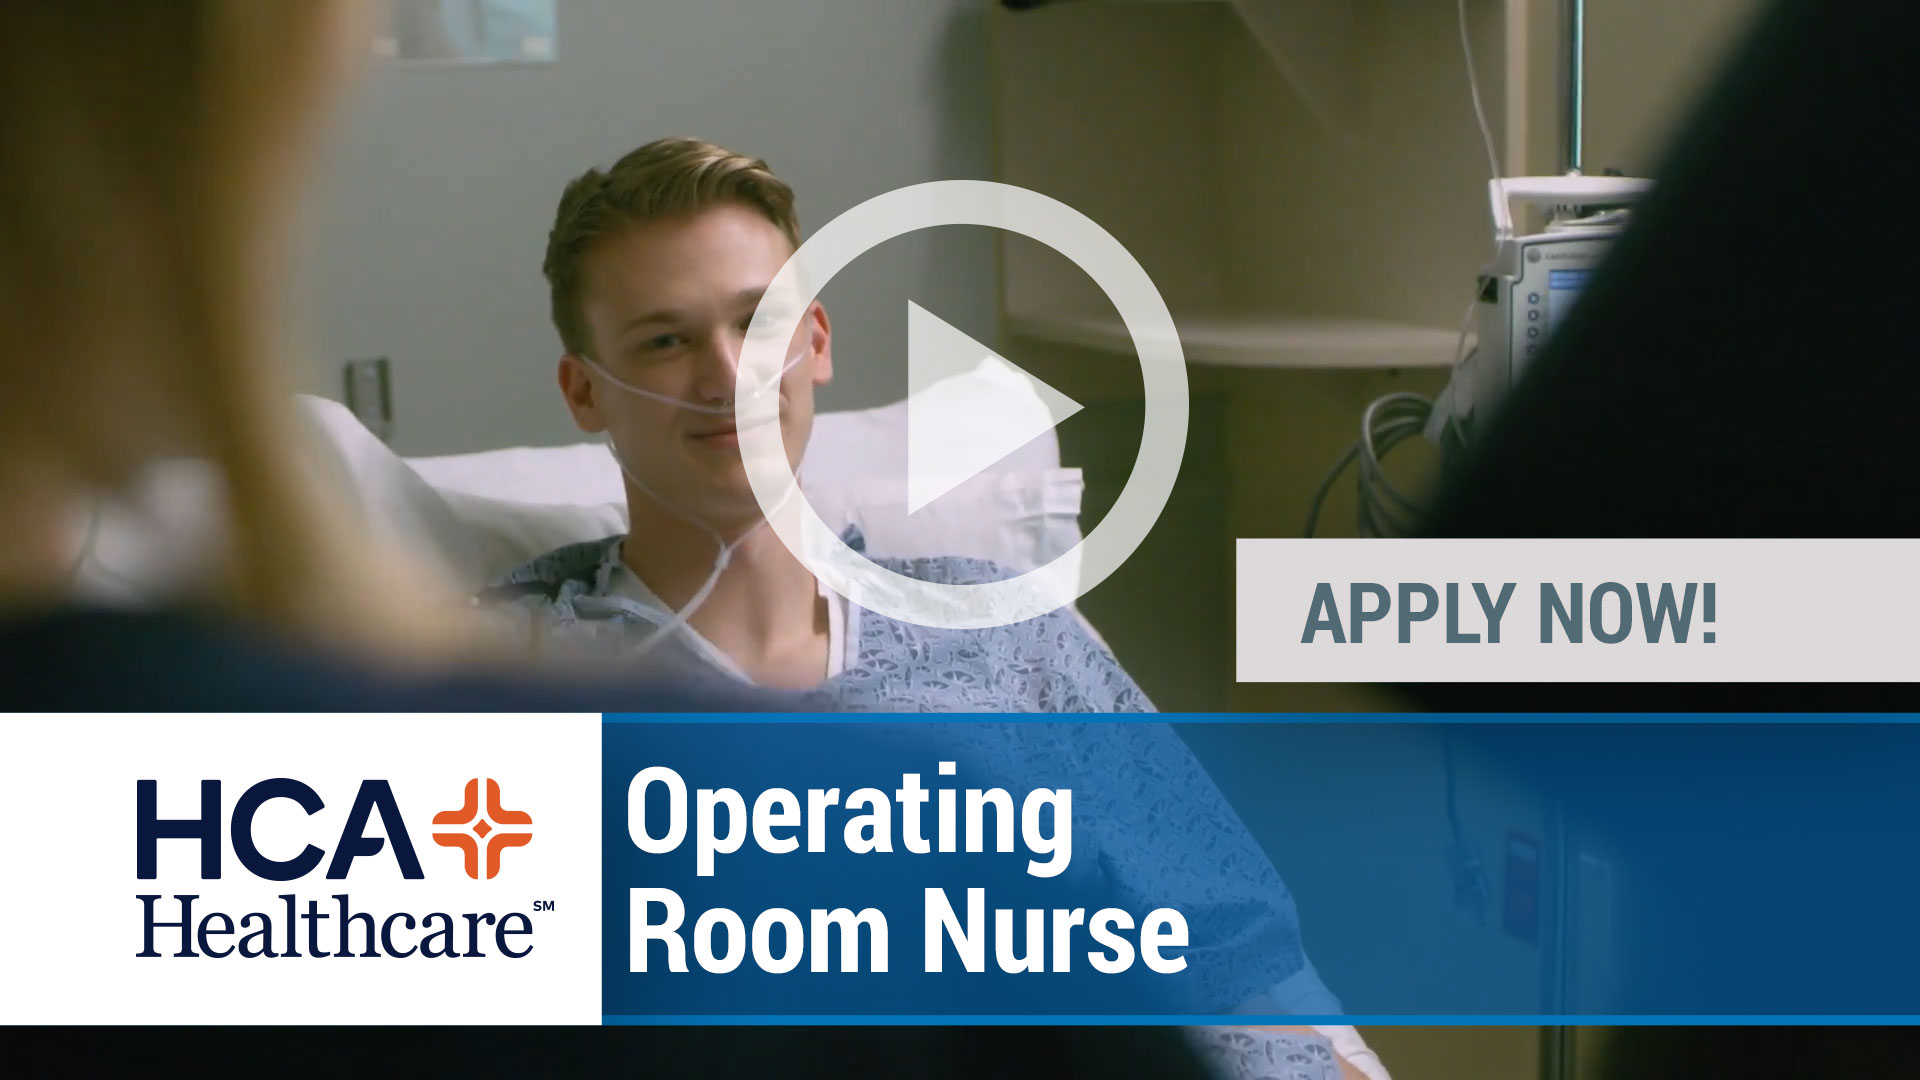 Watch our careers video for available job opening Operating Room Nurse in Nashville, Tennessee